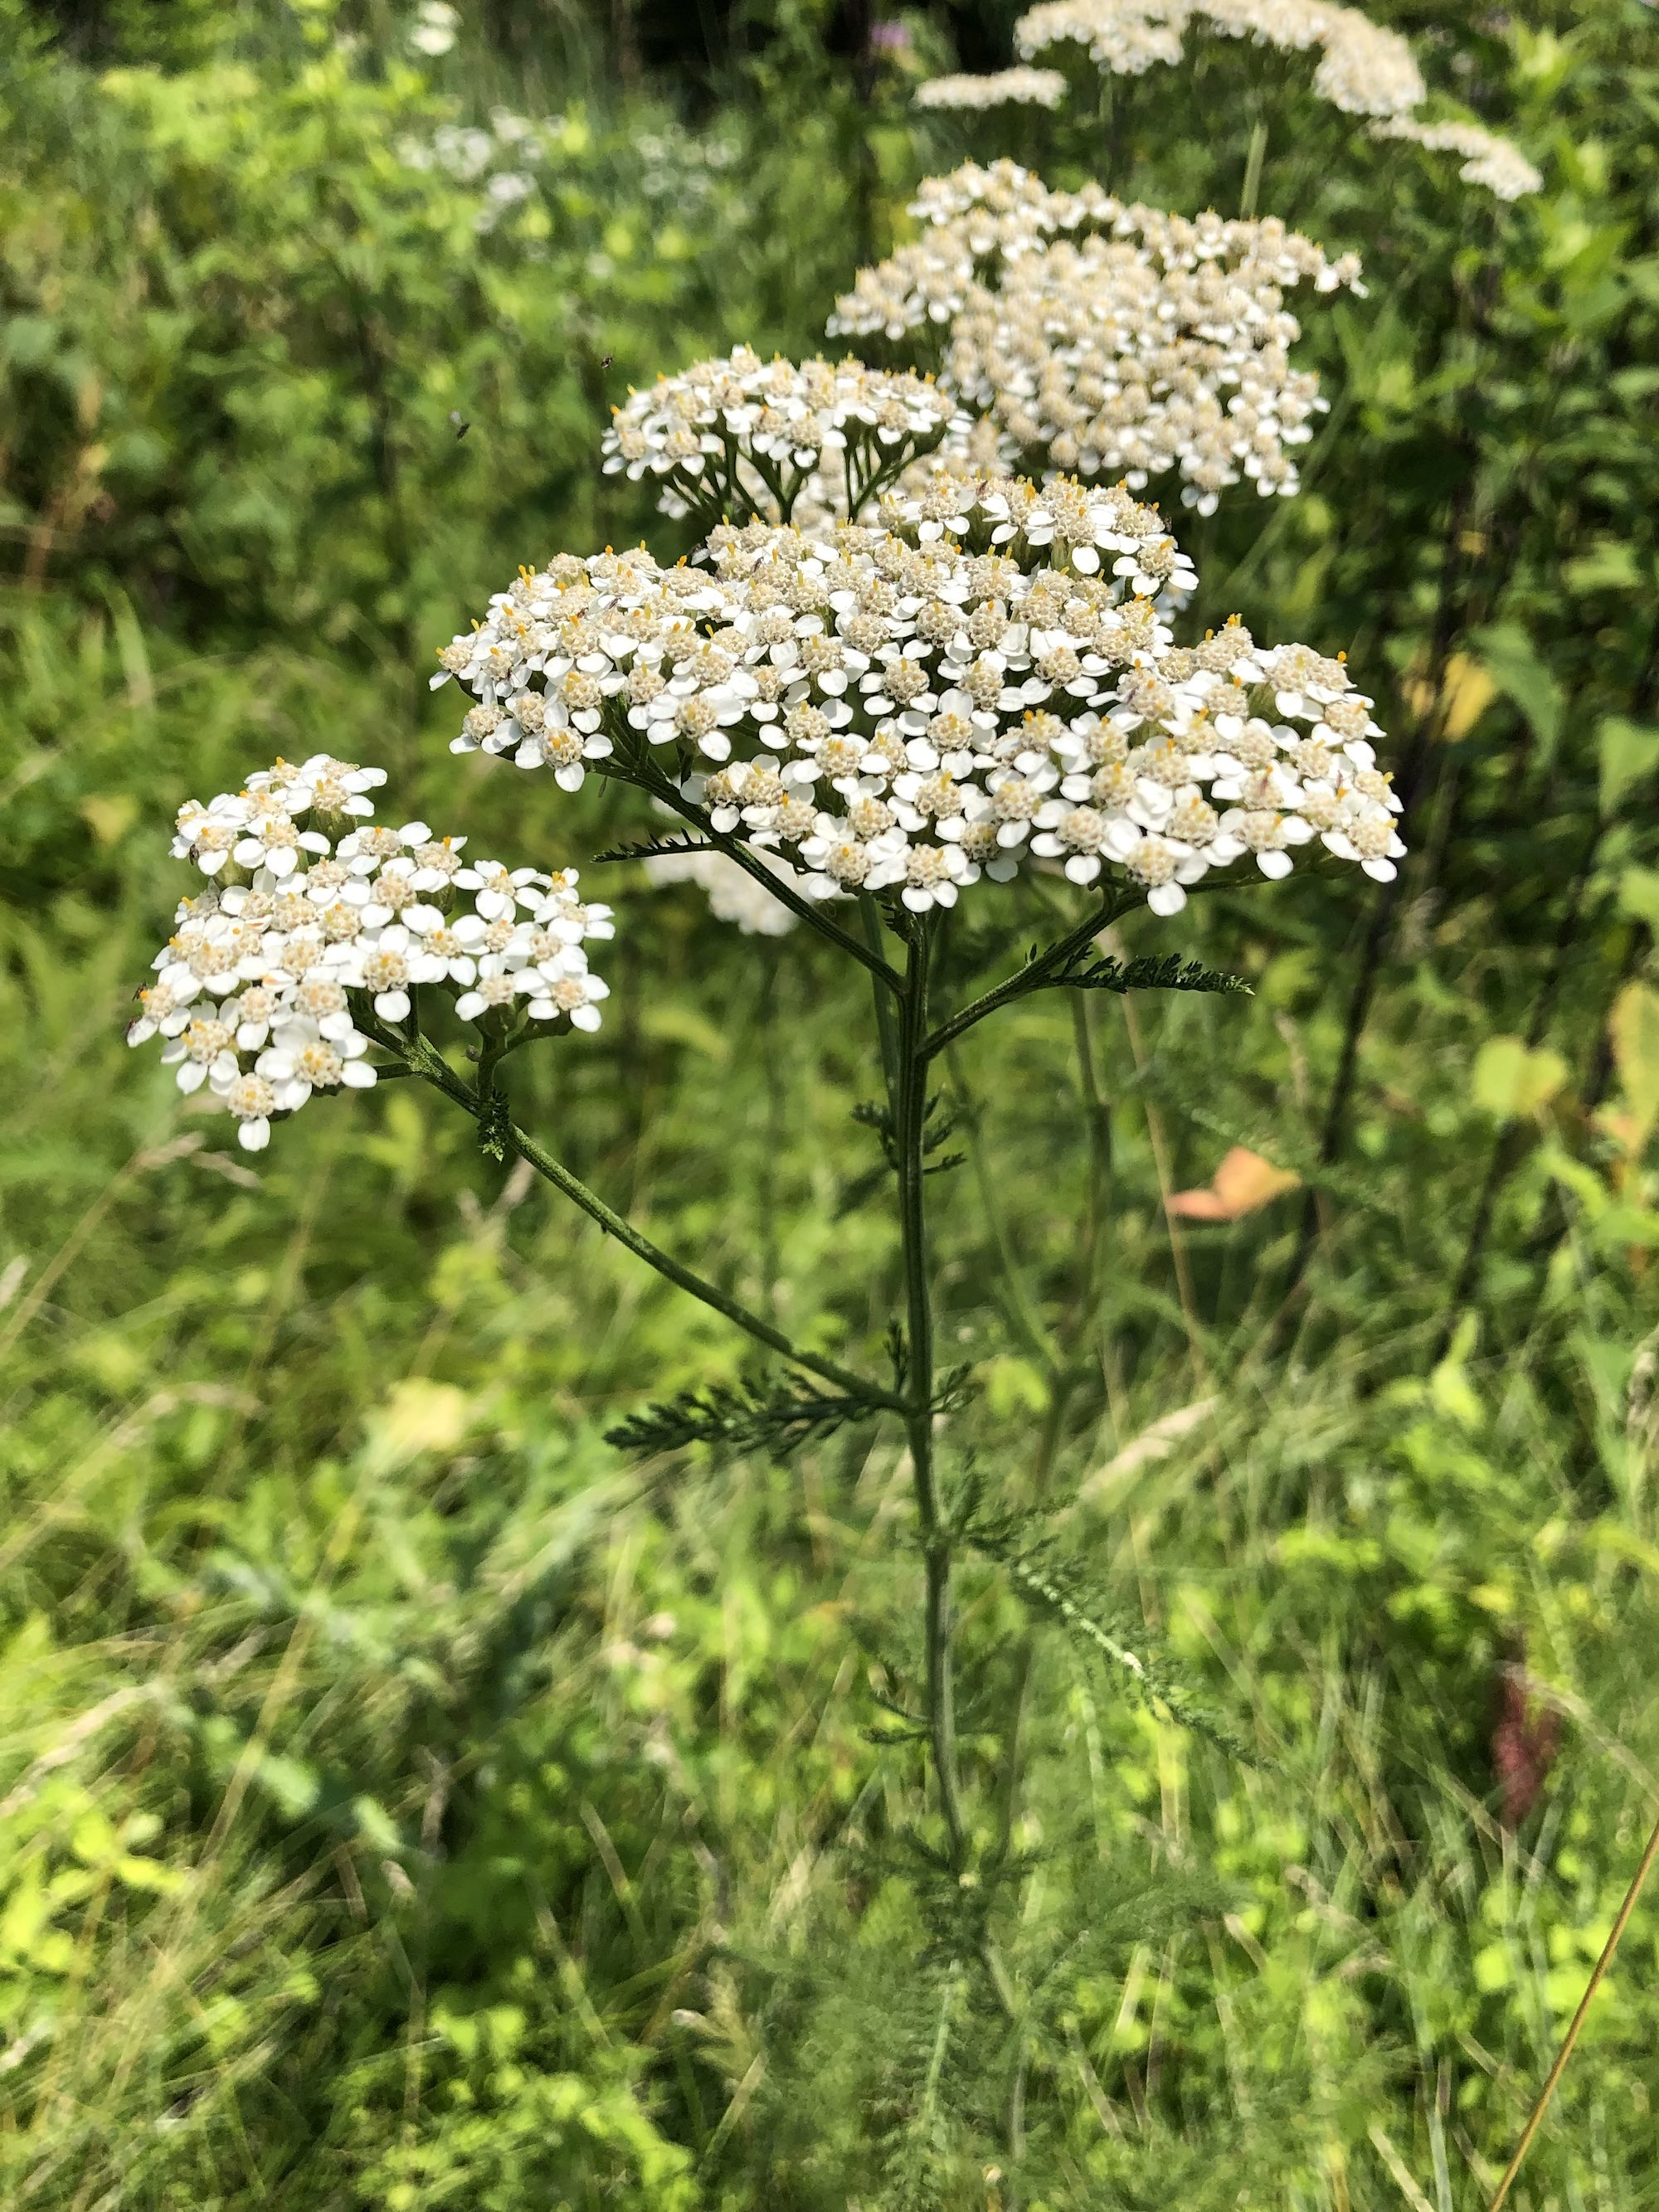 Common Yarrow on shore of Marion Dunn Pond on July 8, 2019.